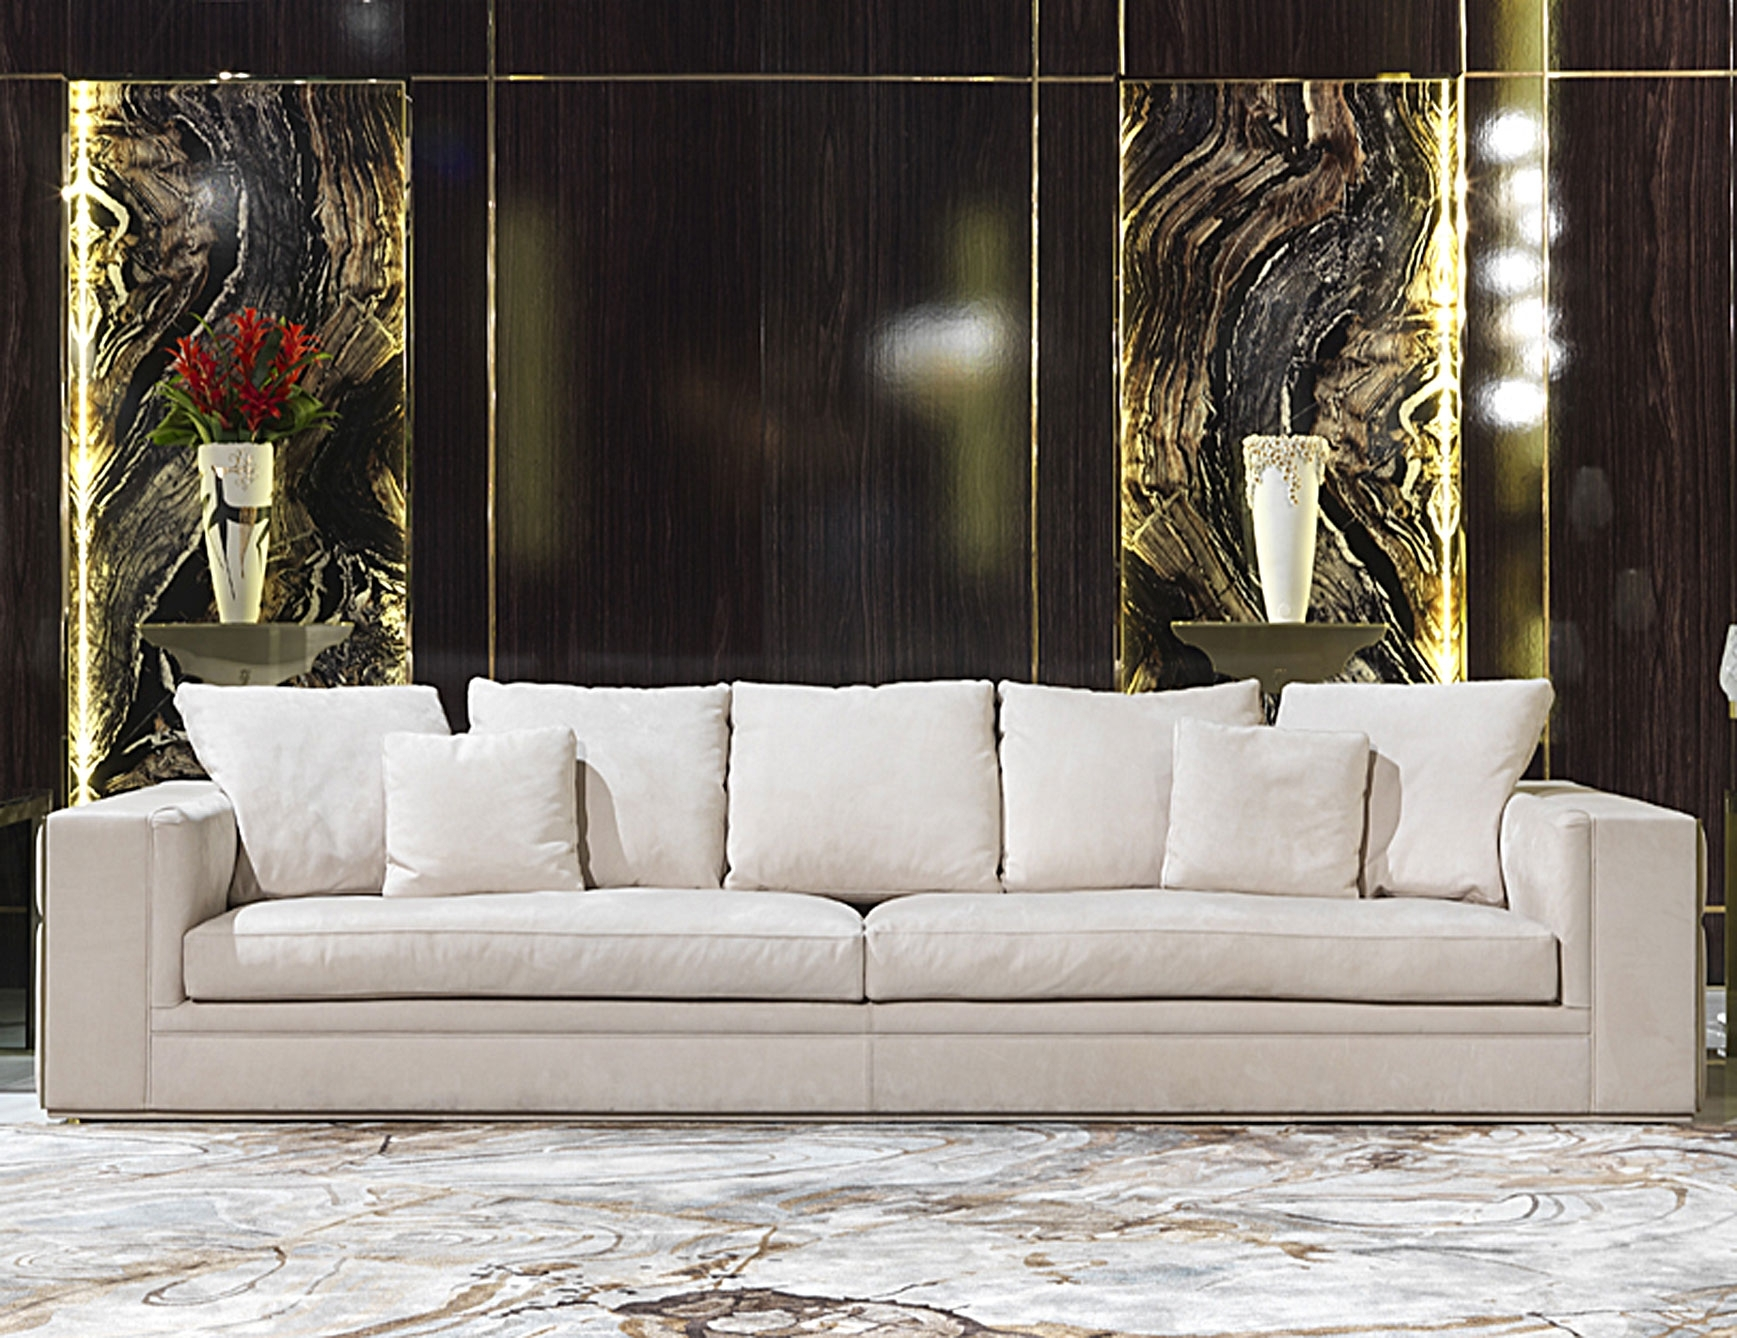 Nella Vetrina Visionnaire Ipe Cavalli Babylon Luxury Italian Sofa with Luxury Sofas (Image 7 of 10)